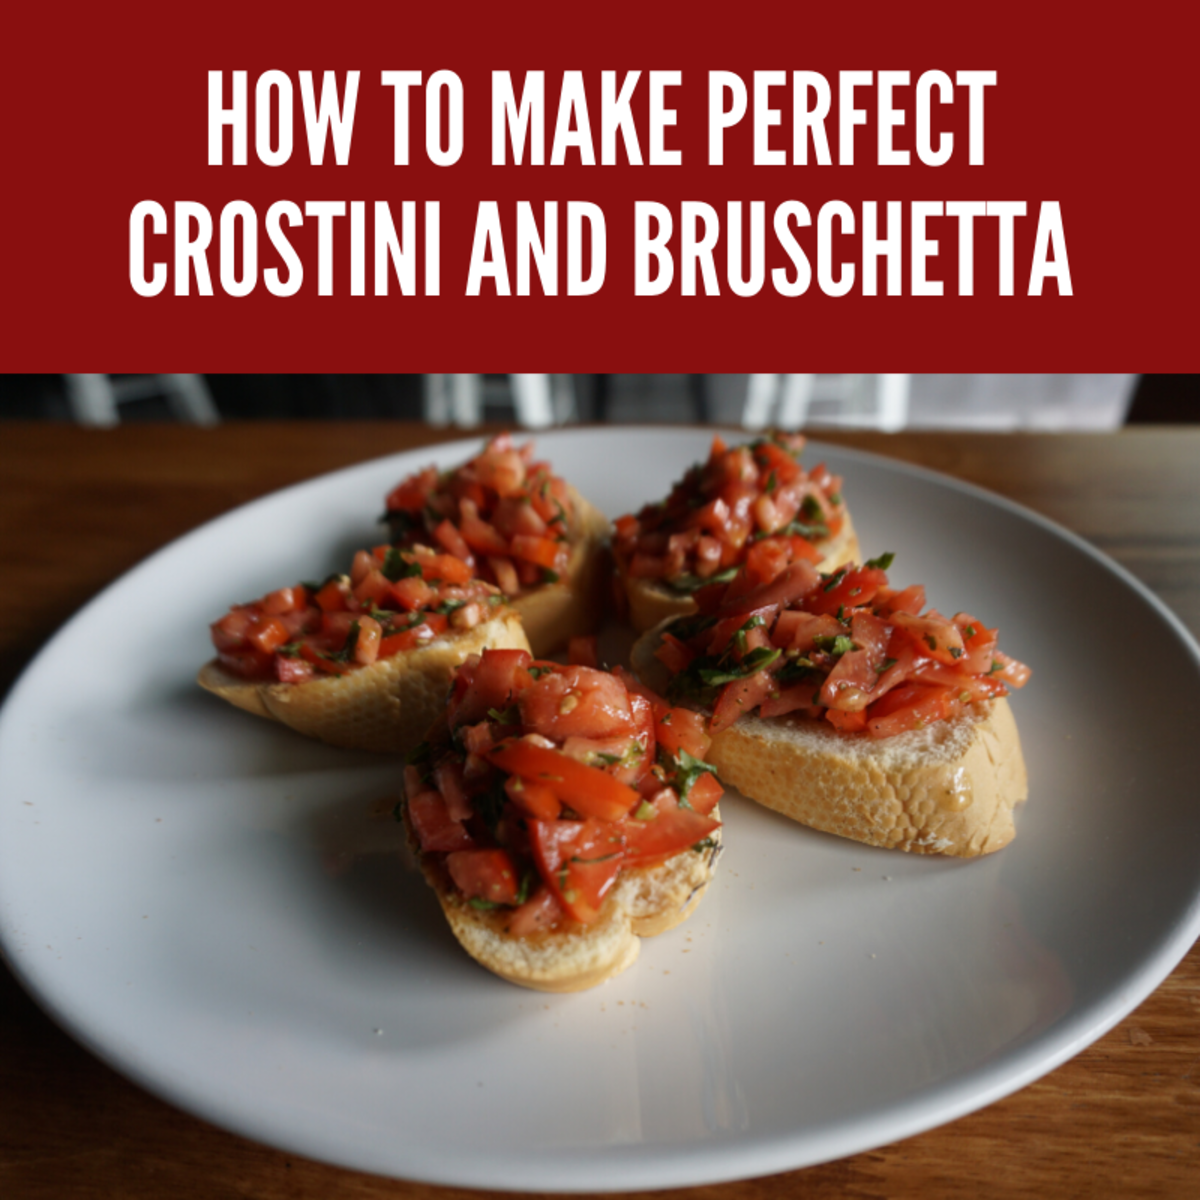 How to Make Perfect Crostini and Bruschetta: It's More Than Just Toast